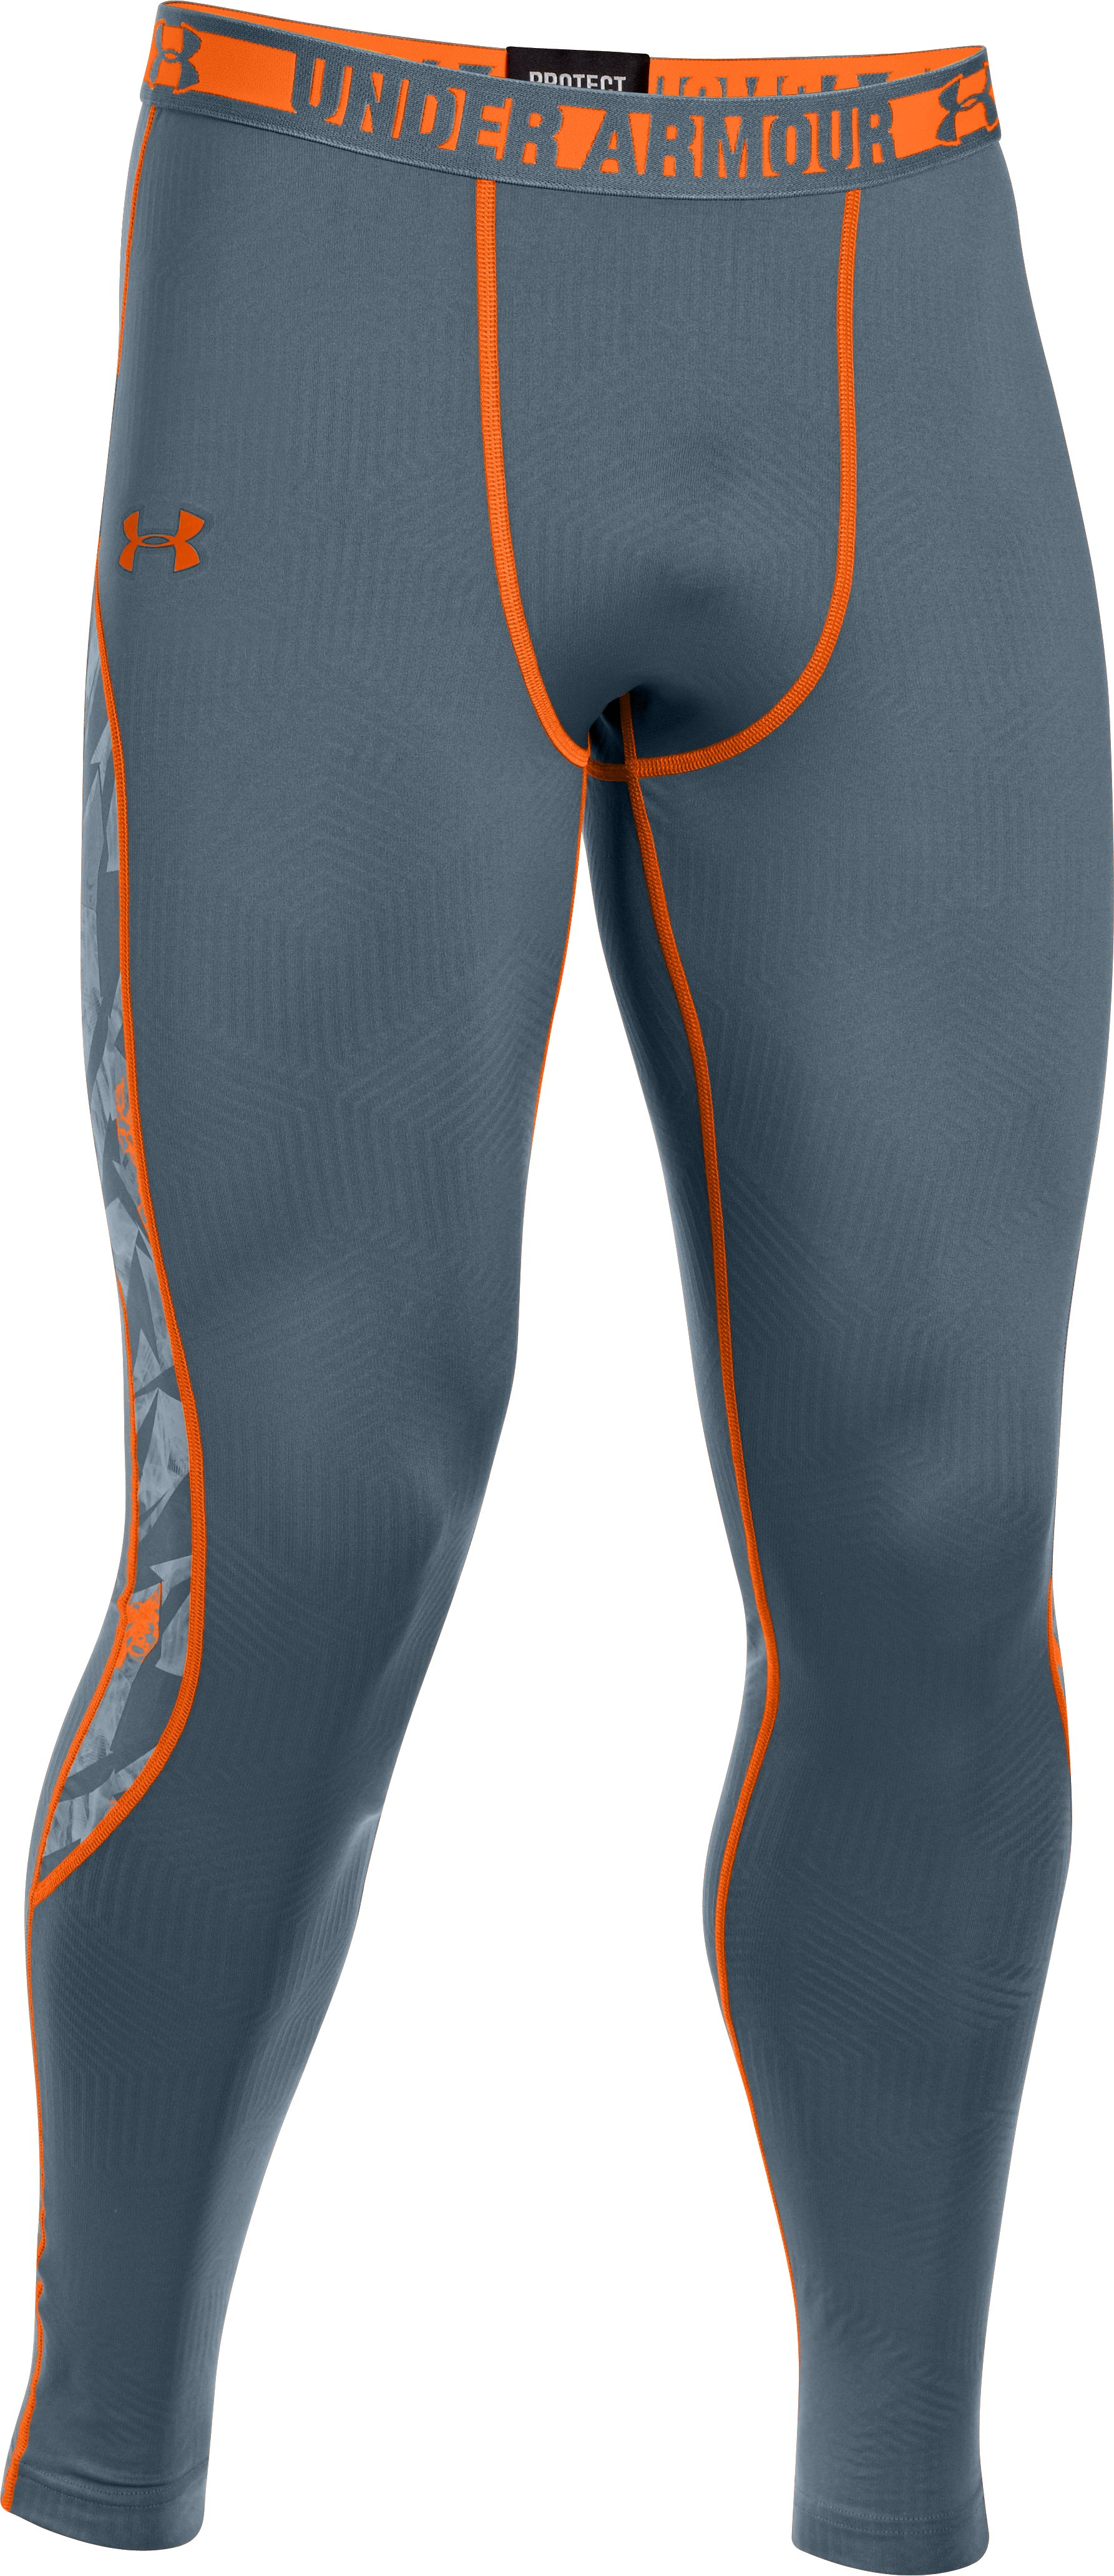 Men's ColdGear® Infrared Evo Fitted Leggings, BOLT GRAY